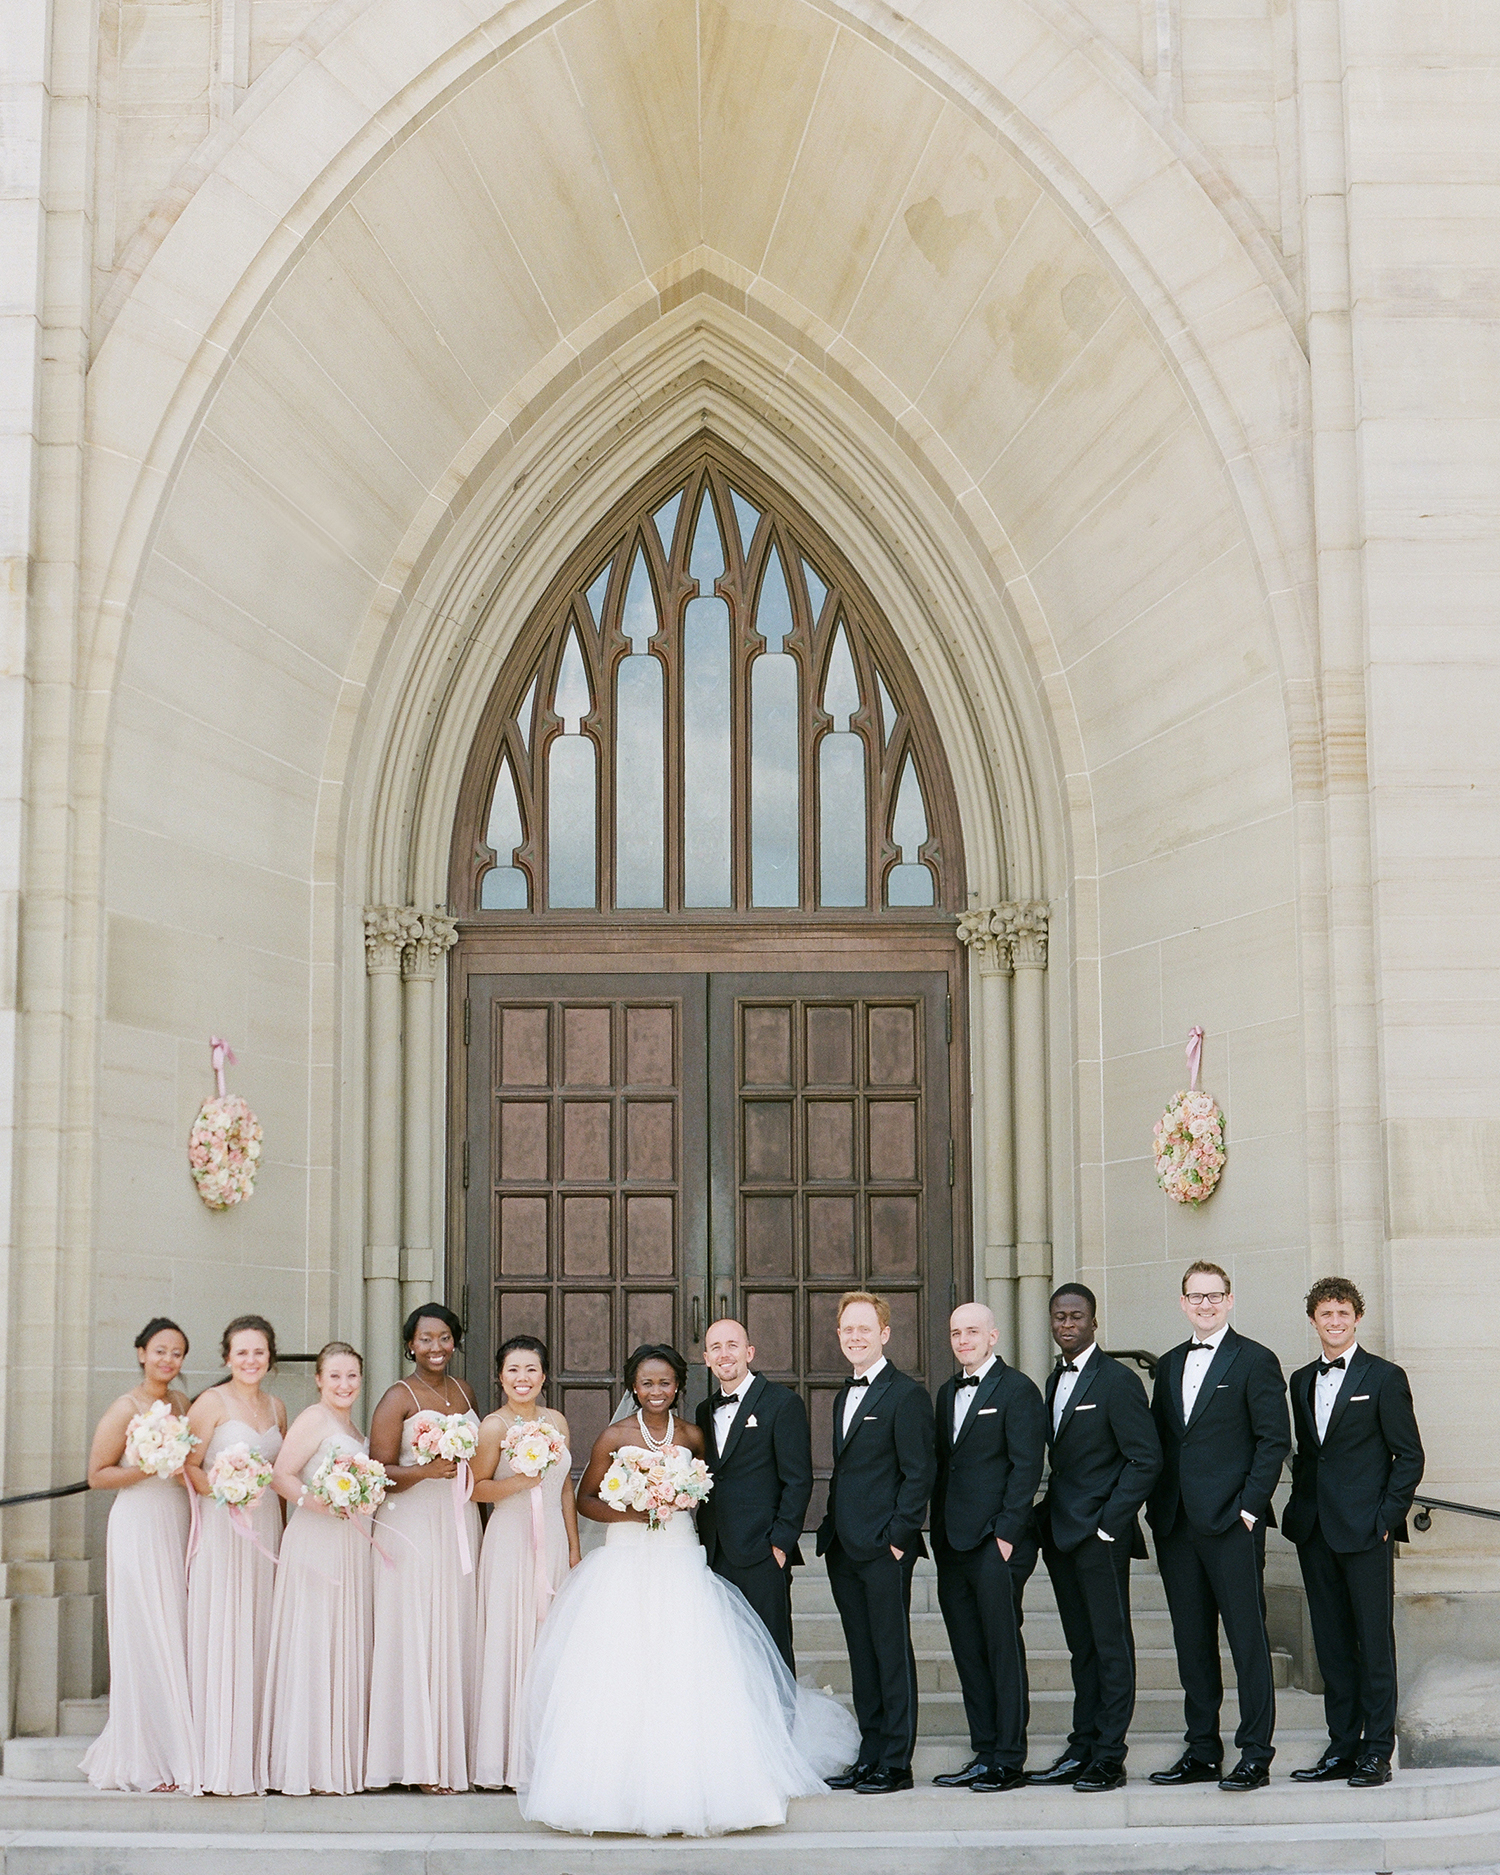 anwuli patrick wedding bridal party in front of church